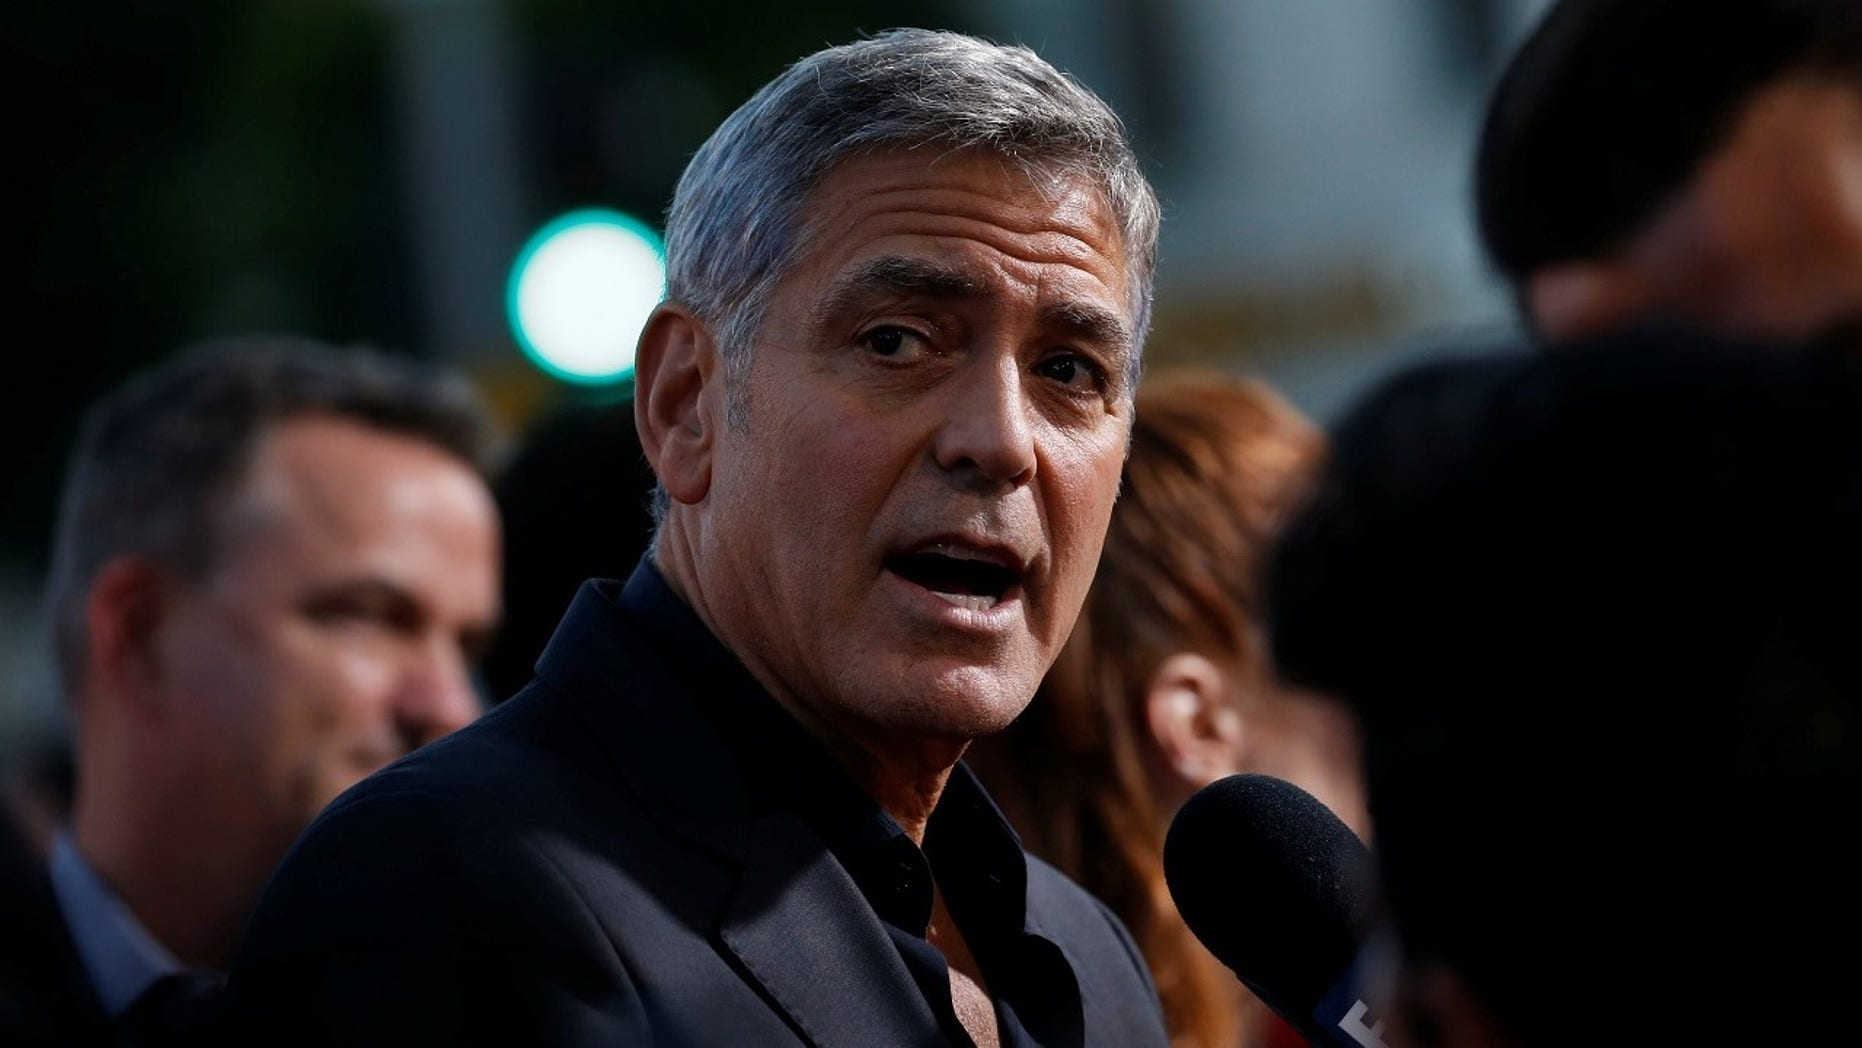 """George Clooney said he hopes the sexual harassment stories after the Harvey Weinstein scandal will be a """"watershed moment for society."""""""